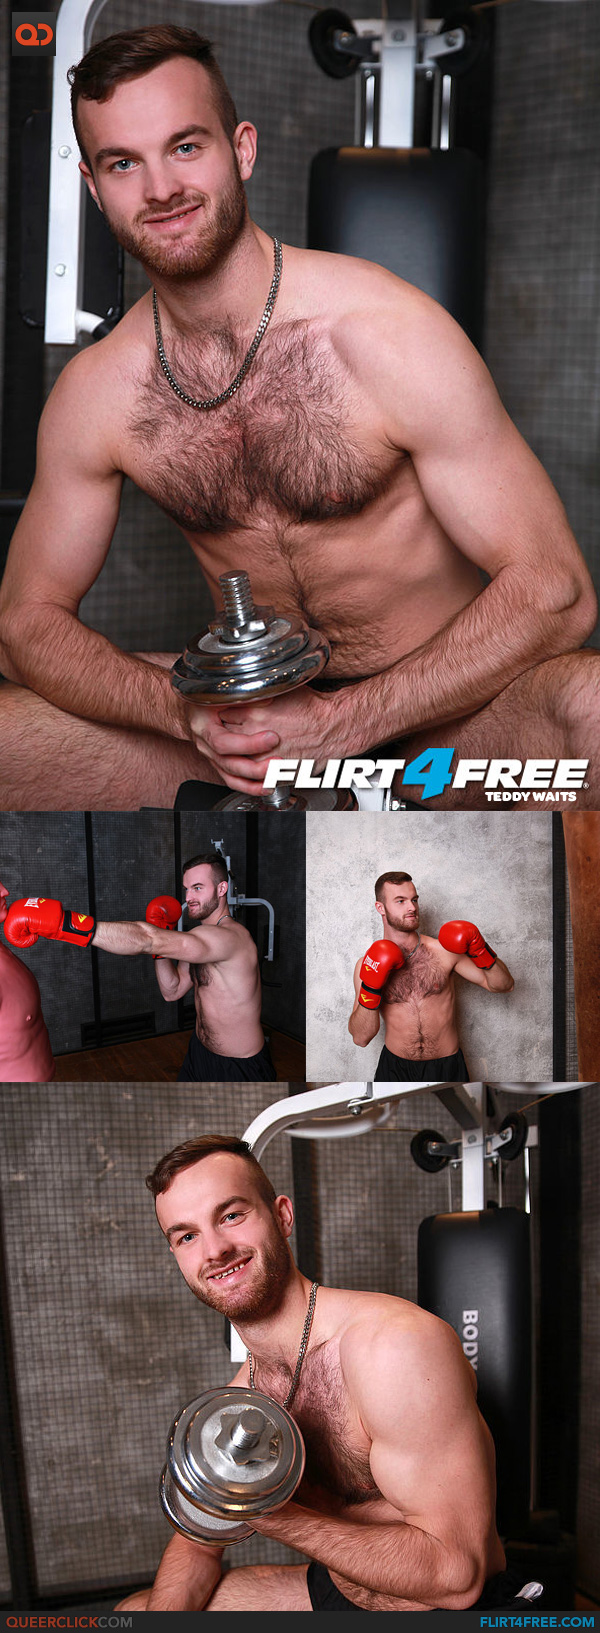 Flirt4Free: Teddy Waits